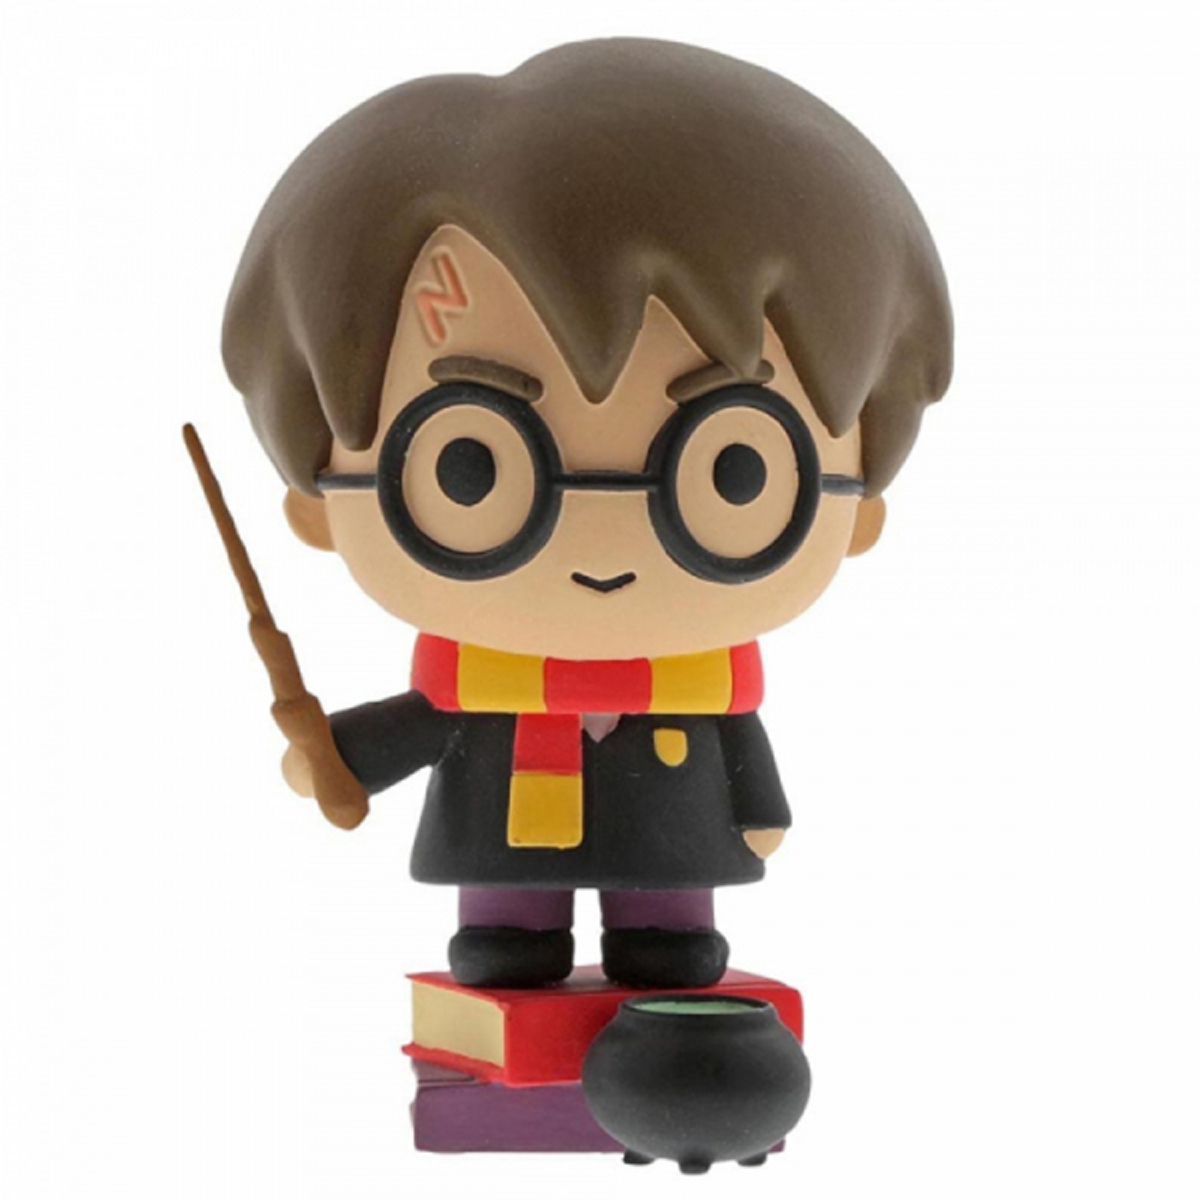 Figurine résine \'Harry Potter\' chibi style - 85x55x50 mm - [R2035]